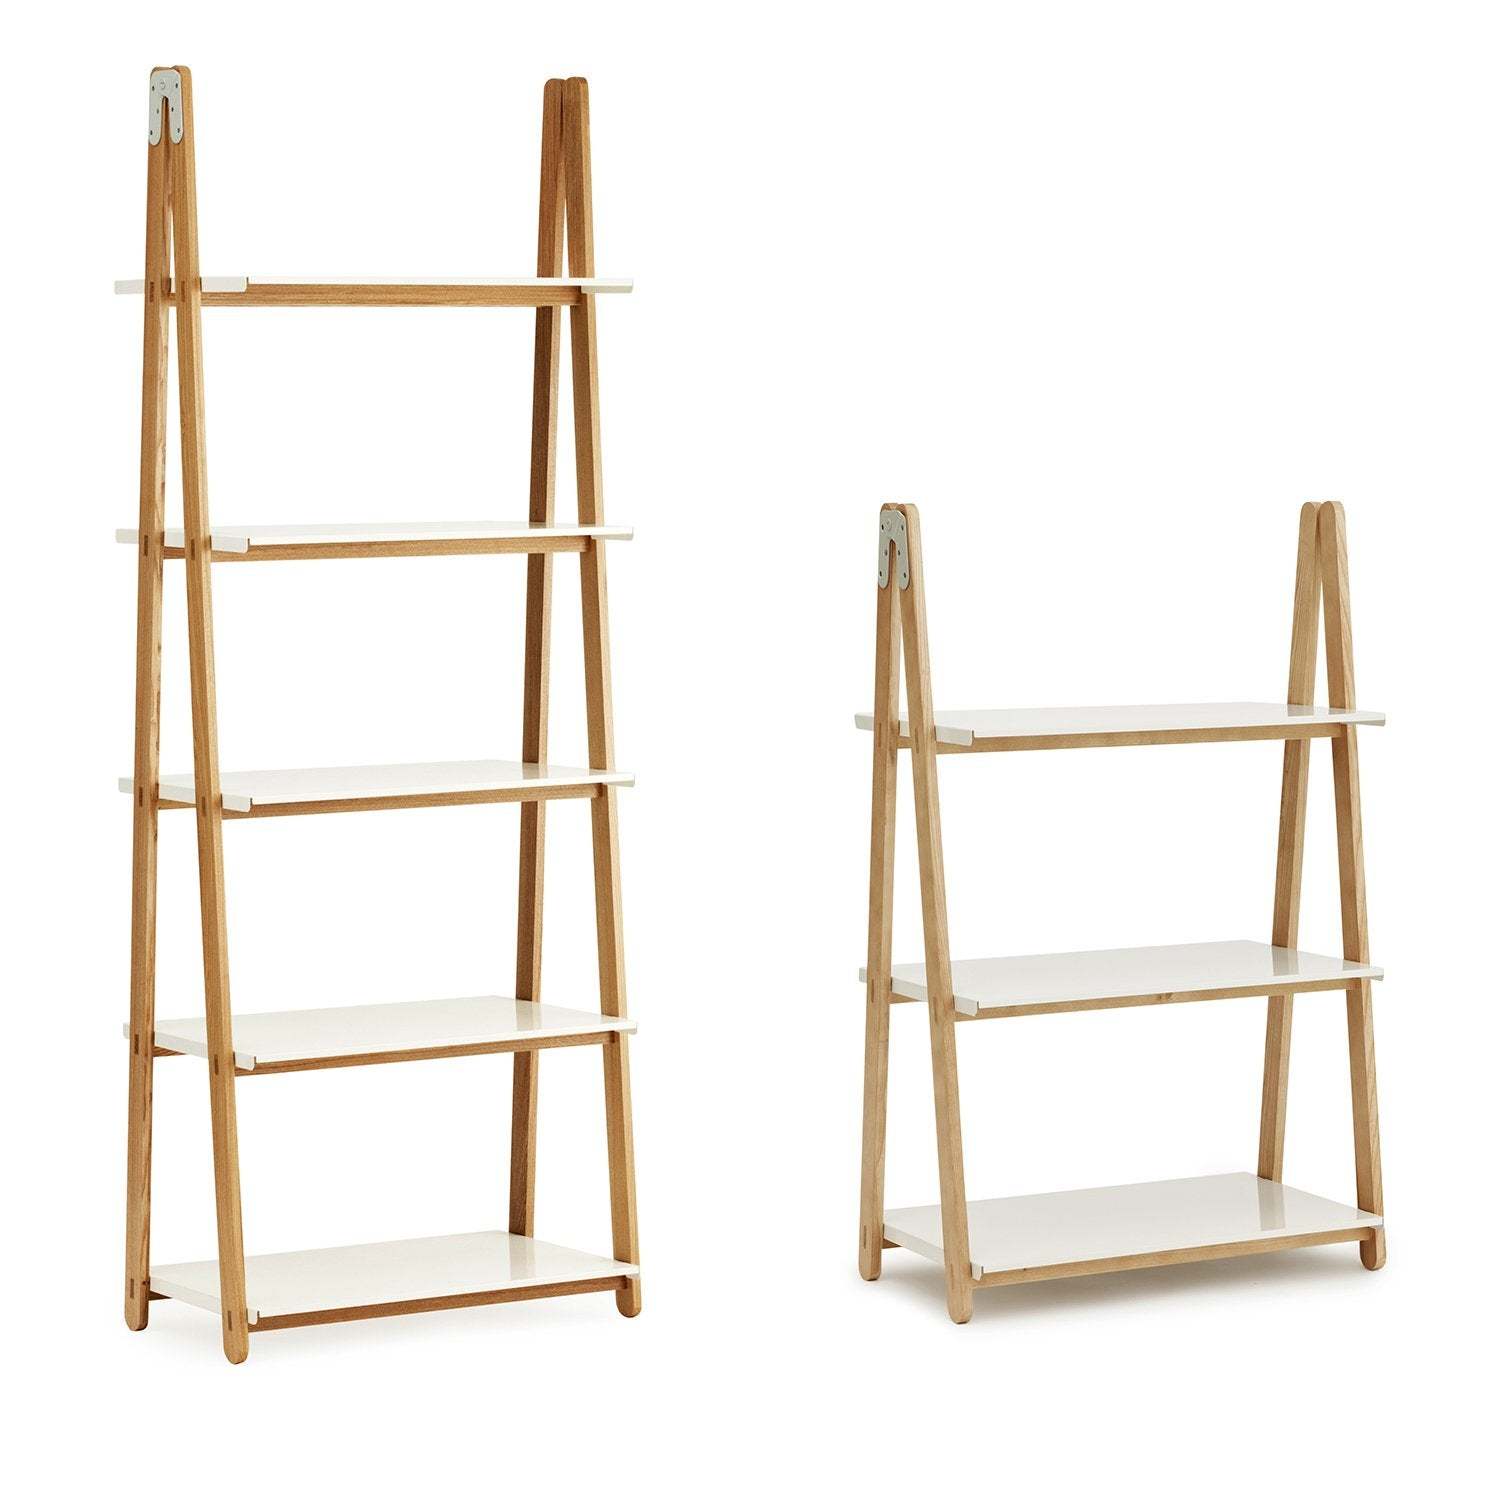 One Step Up Bookcase: High + Low